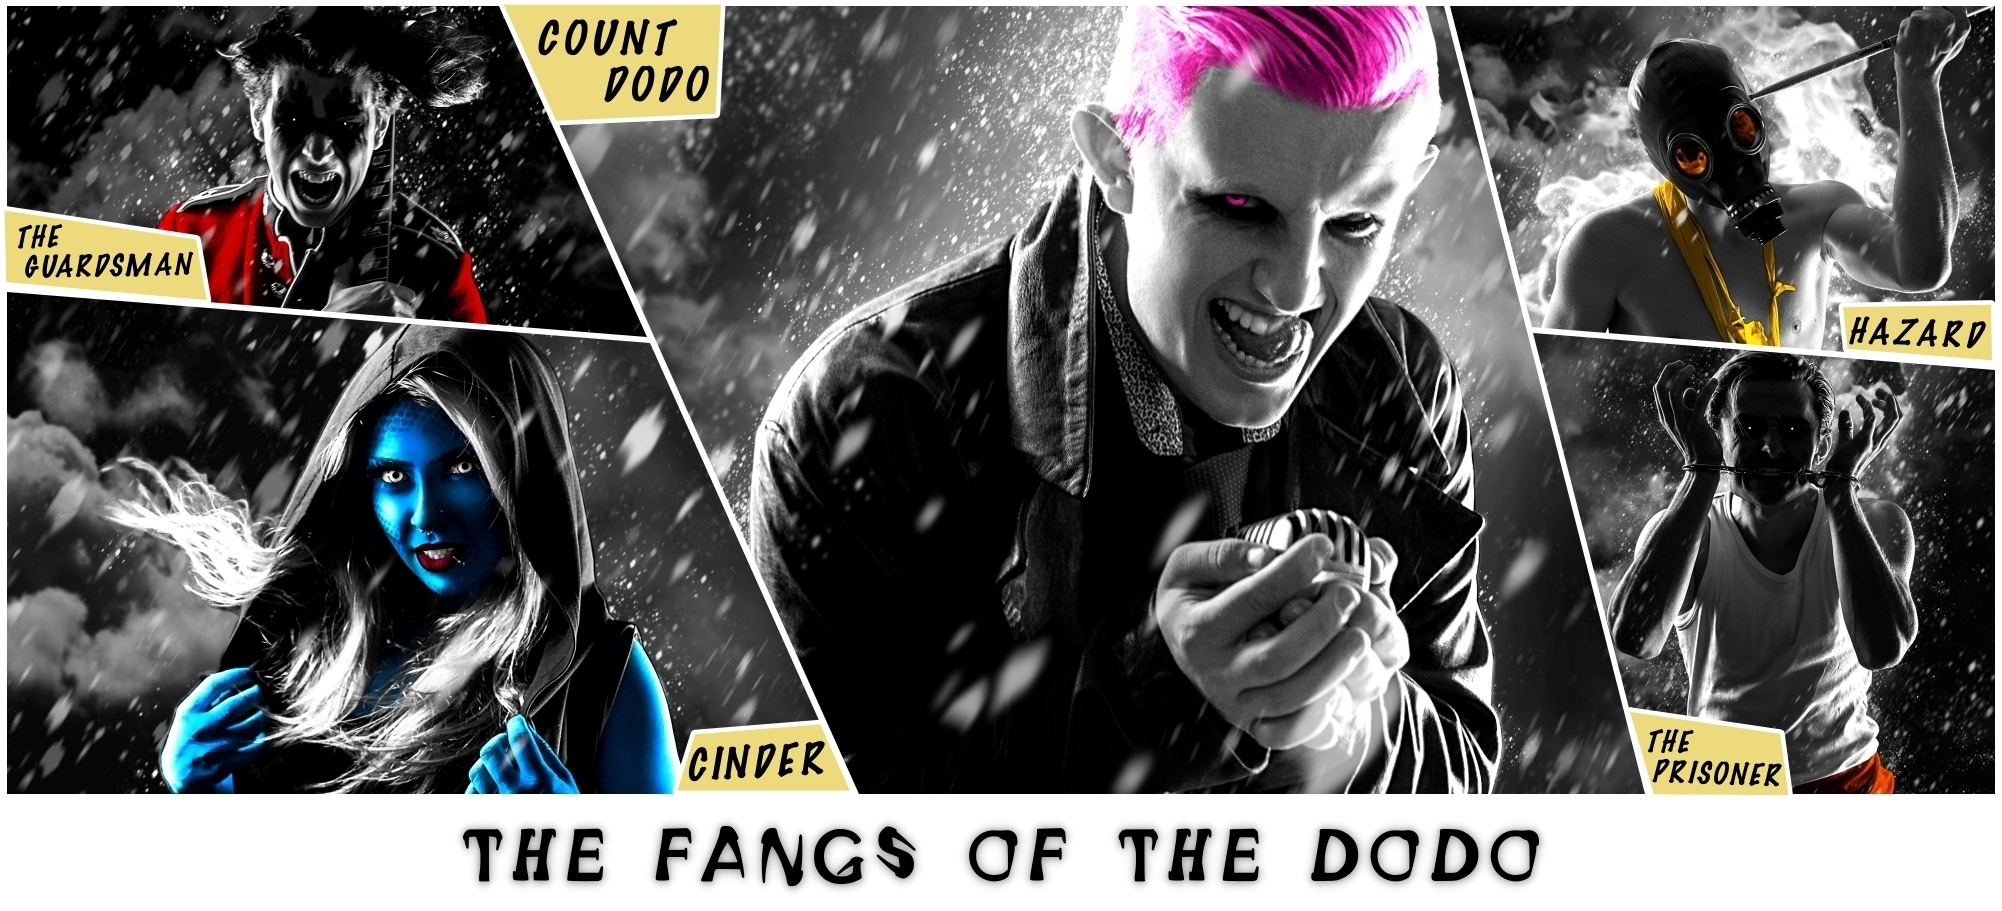 Marvel-inspired Criminal Collective 'The Fangs Of The Dodo' Break Into National Treasury!